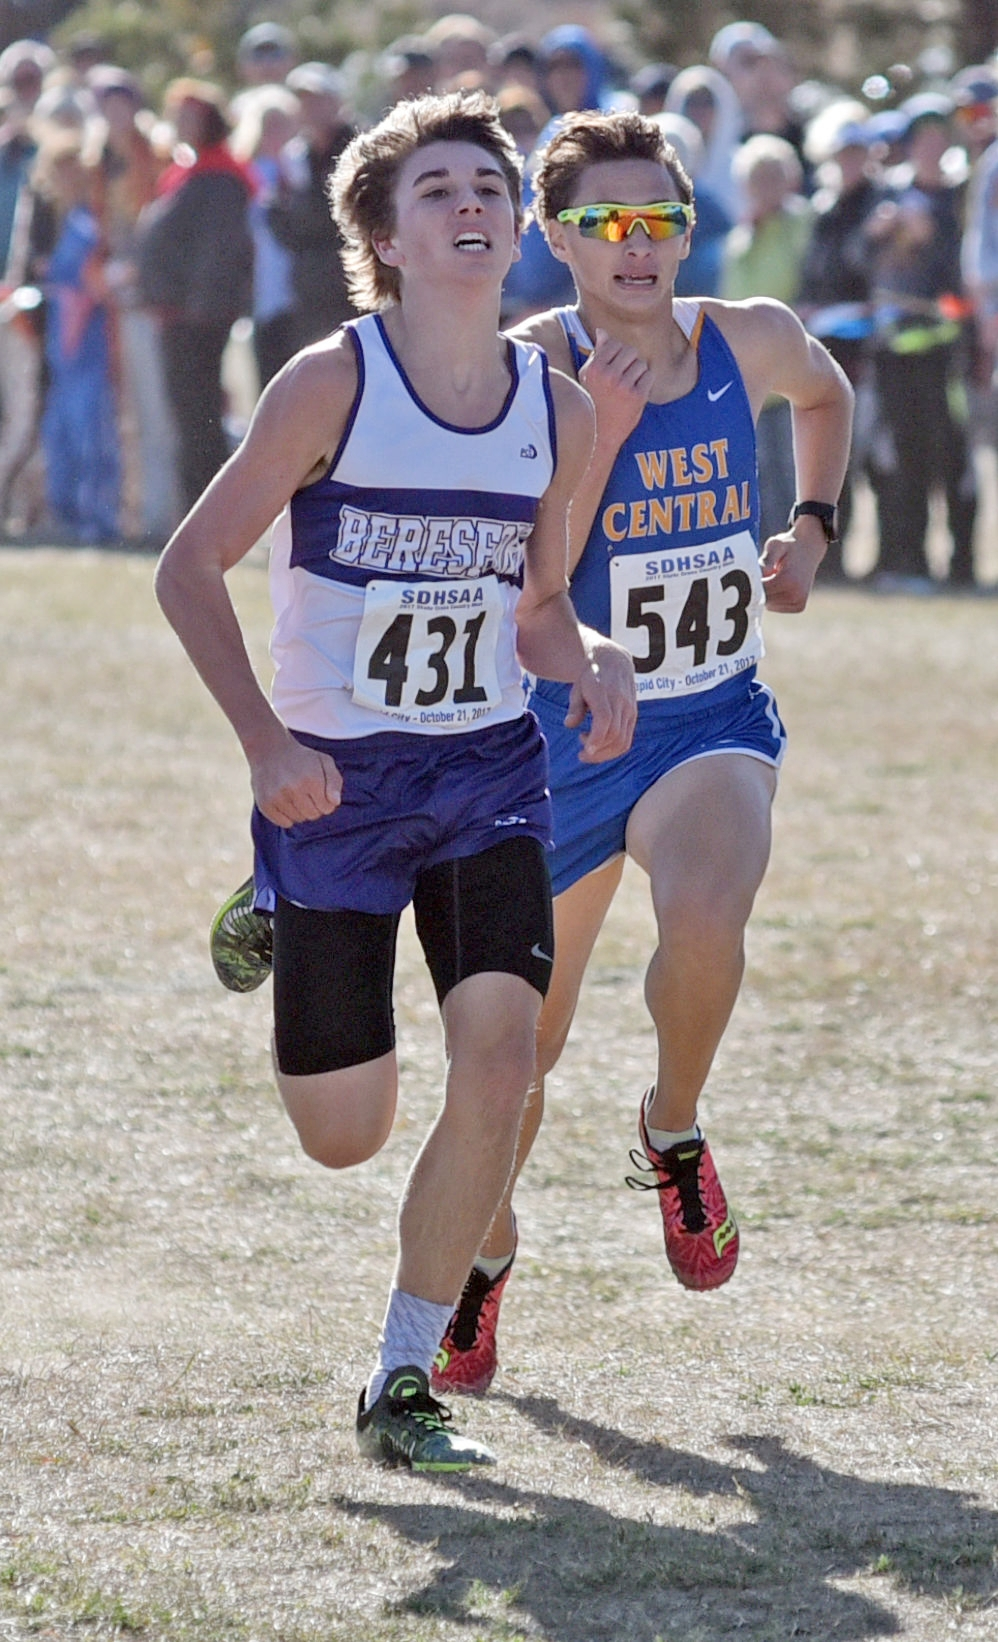 - At the 2017 State cross-country meet Beresford's Alec Atwood edged West Central's Braden Peters:The times - Atwood 15:58.74….Peters - 15:59.41